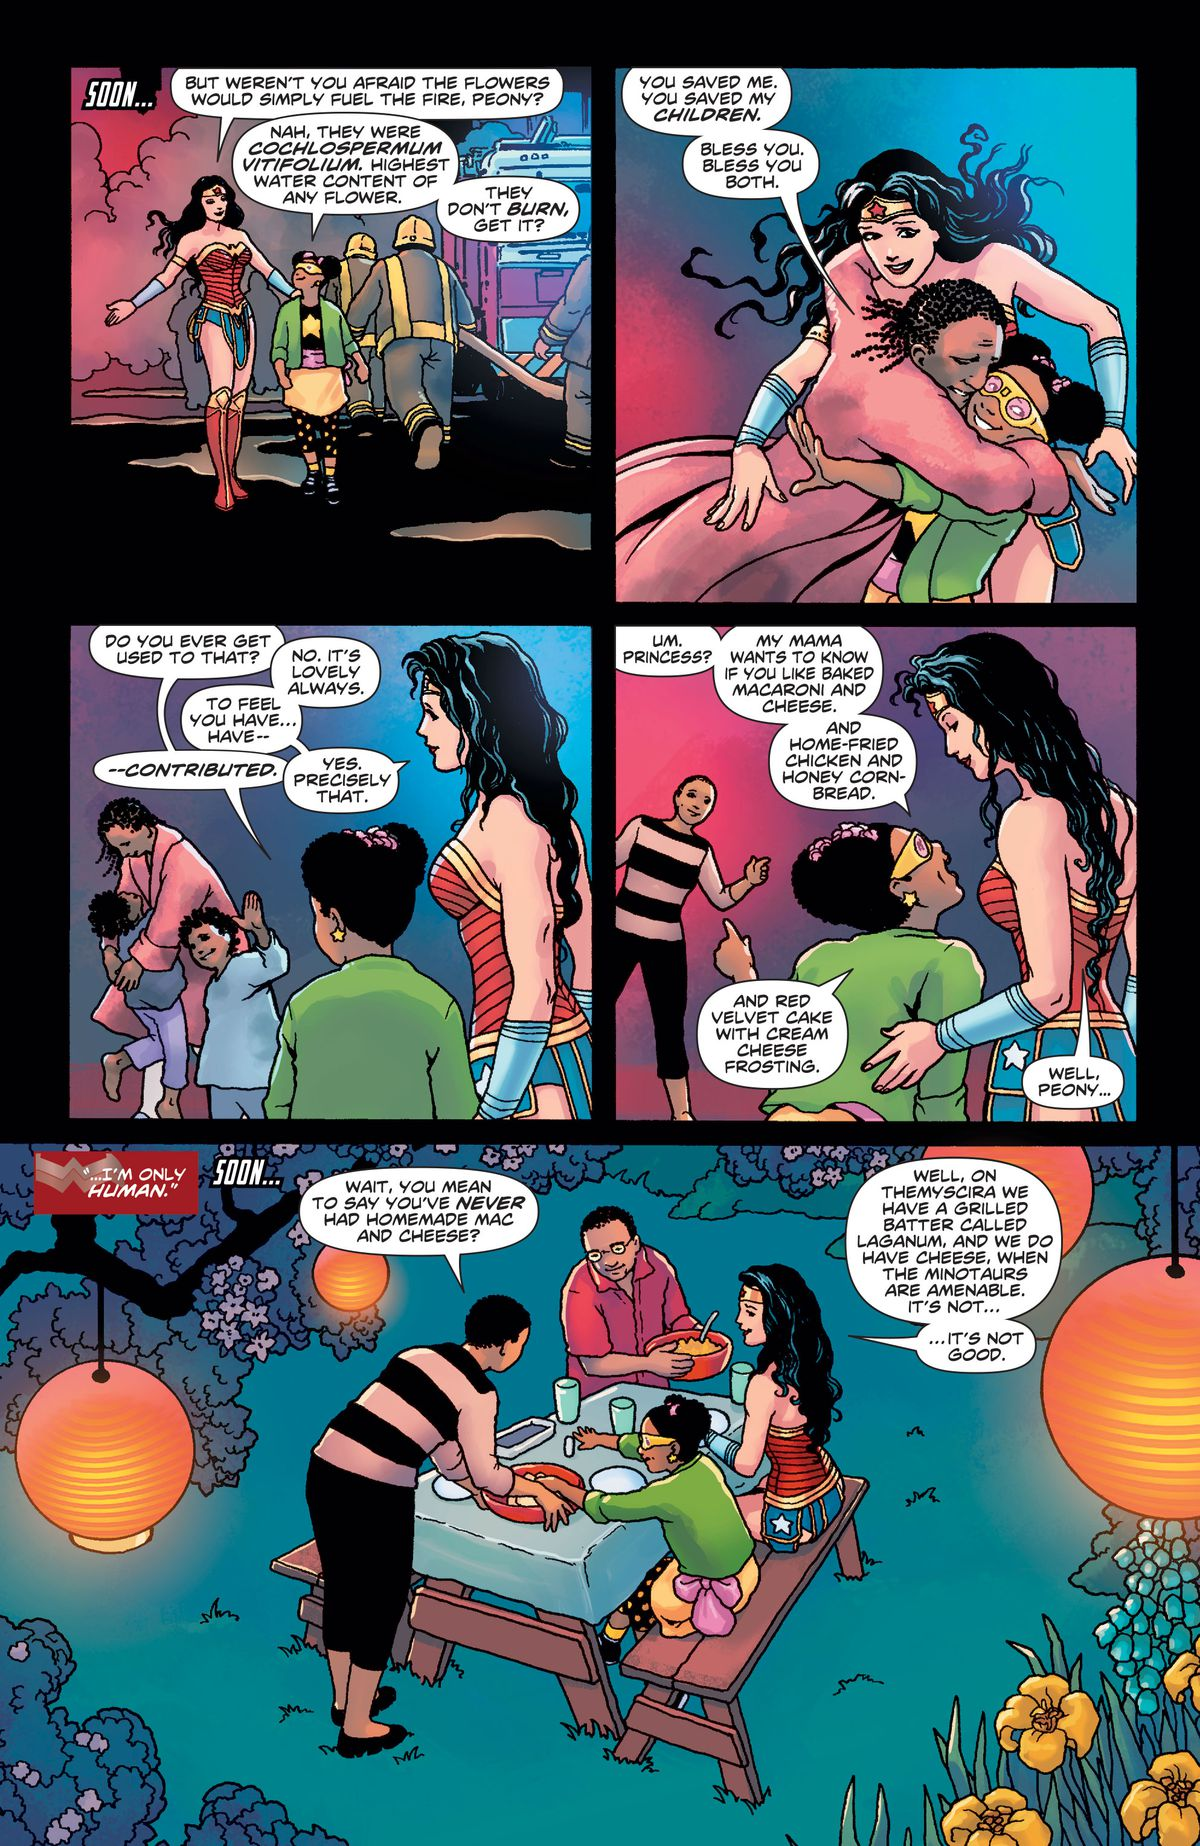 After their victory over the apartment fire, Star-Blossom introduces Wonder Woman to her mother, who invites the Amazon over for dinner, in Wonder Woman #750, DC Comics (2020).